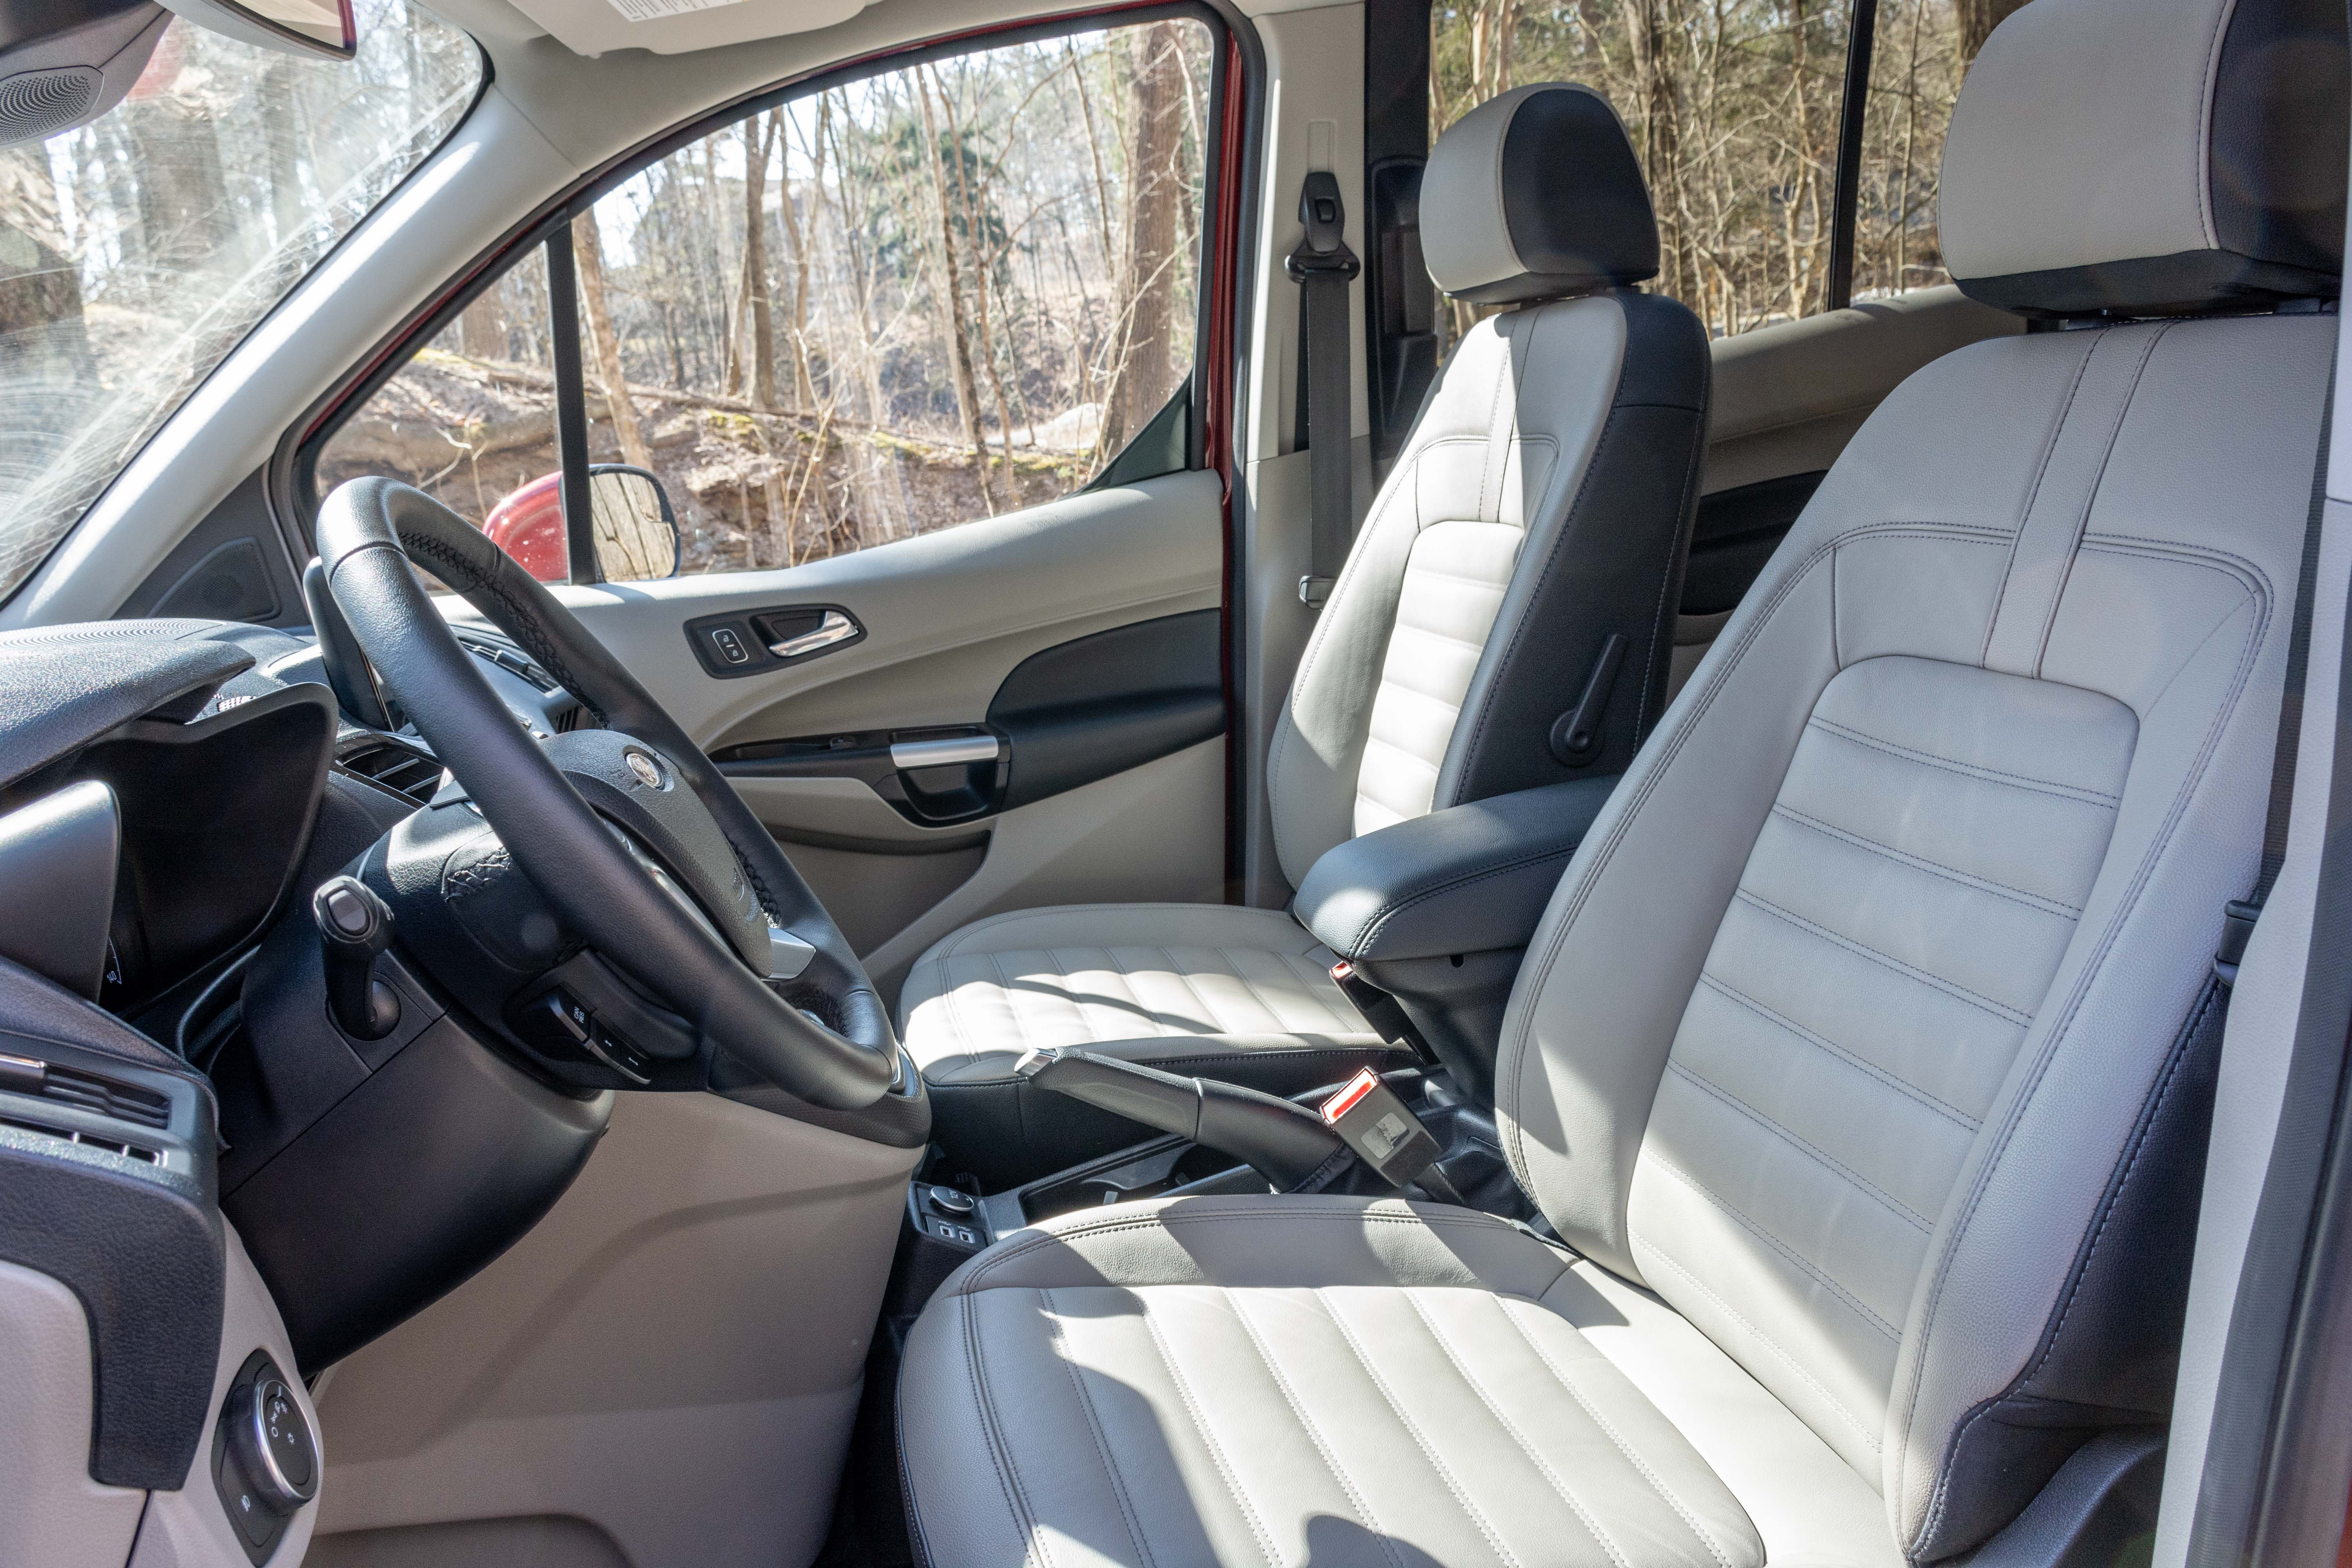 2019 Ford Transit Connect Wagon Review – The Clock Strikes